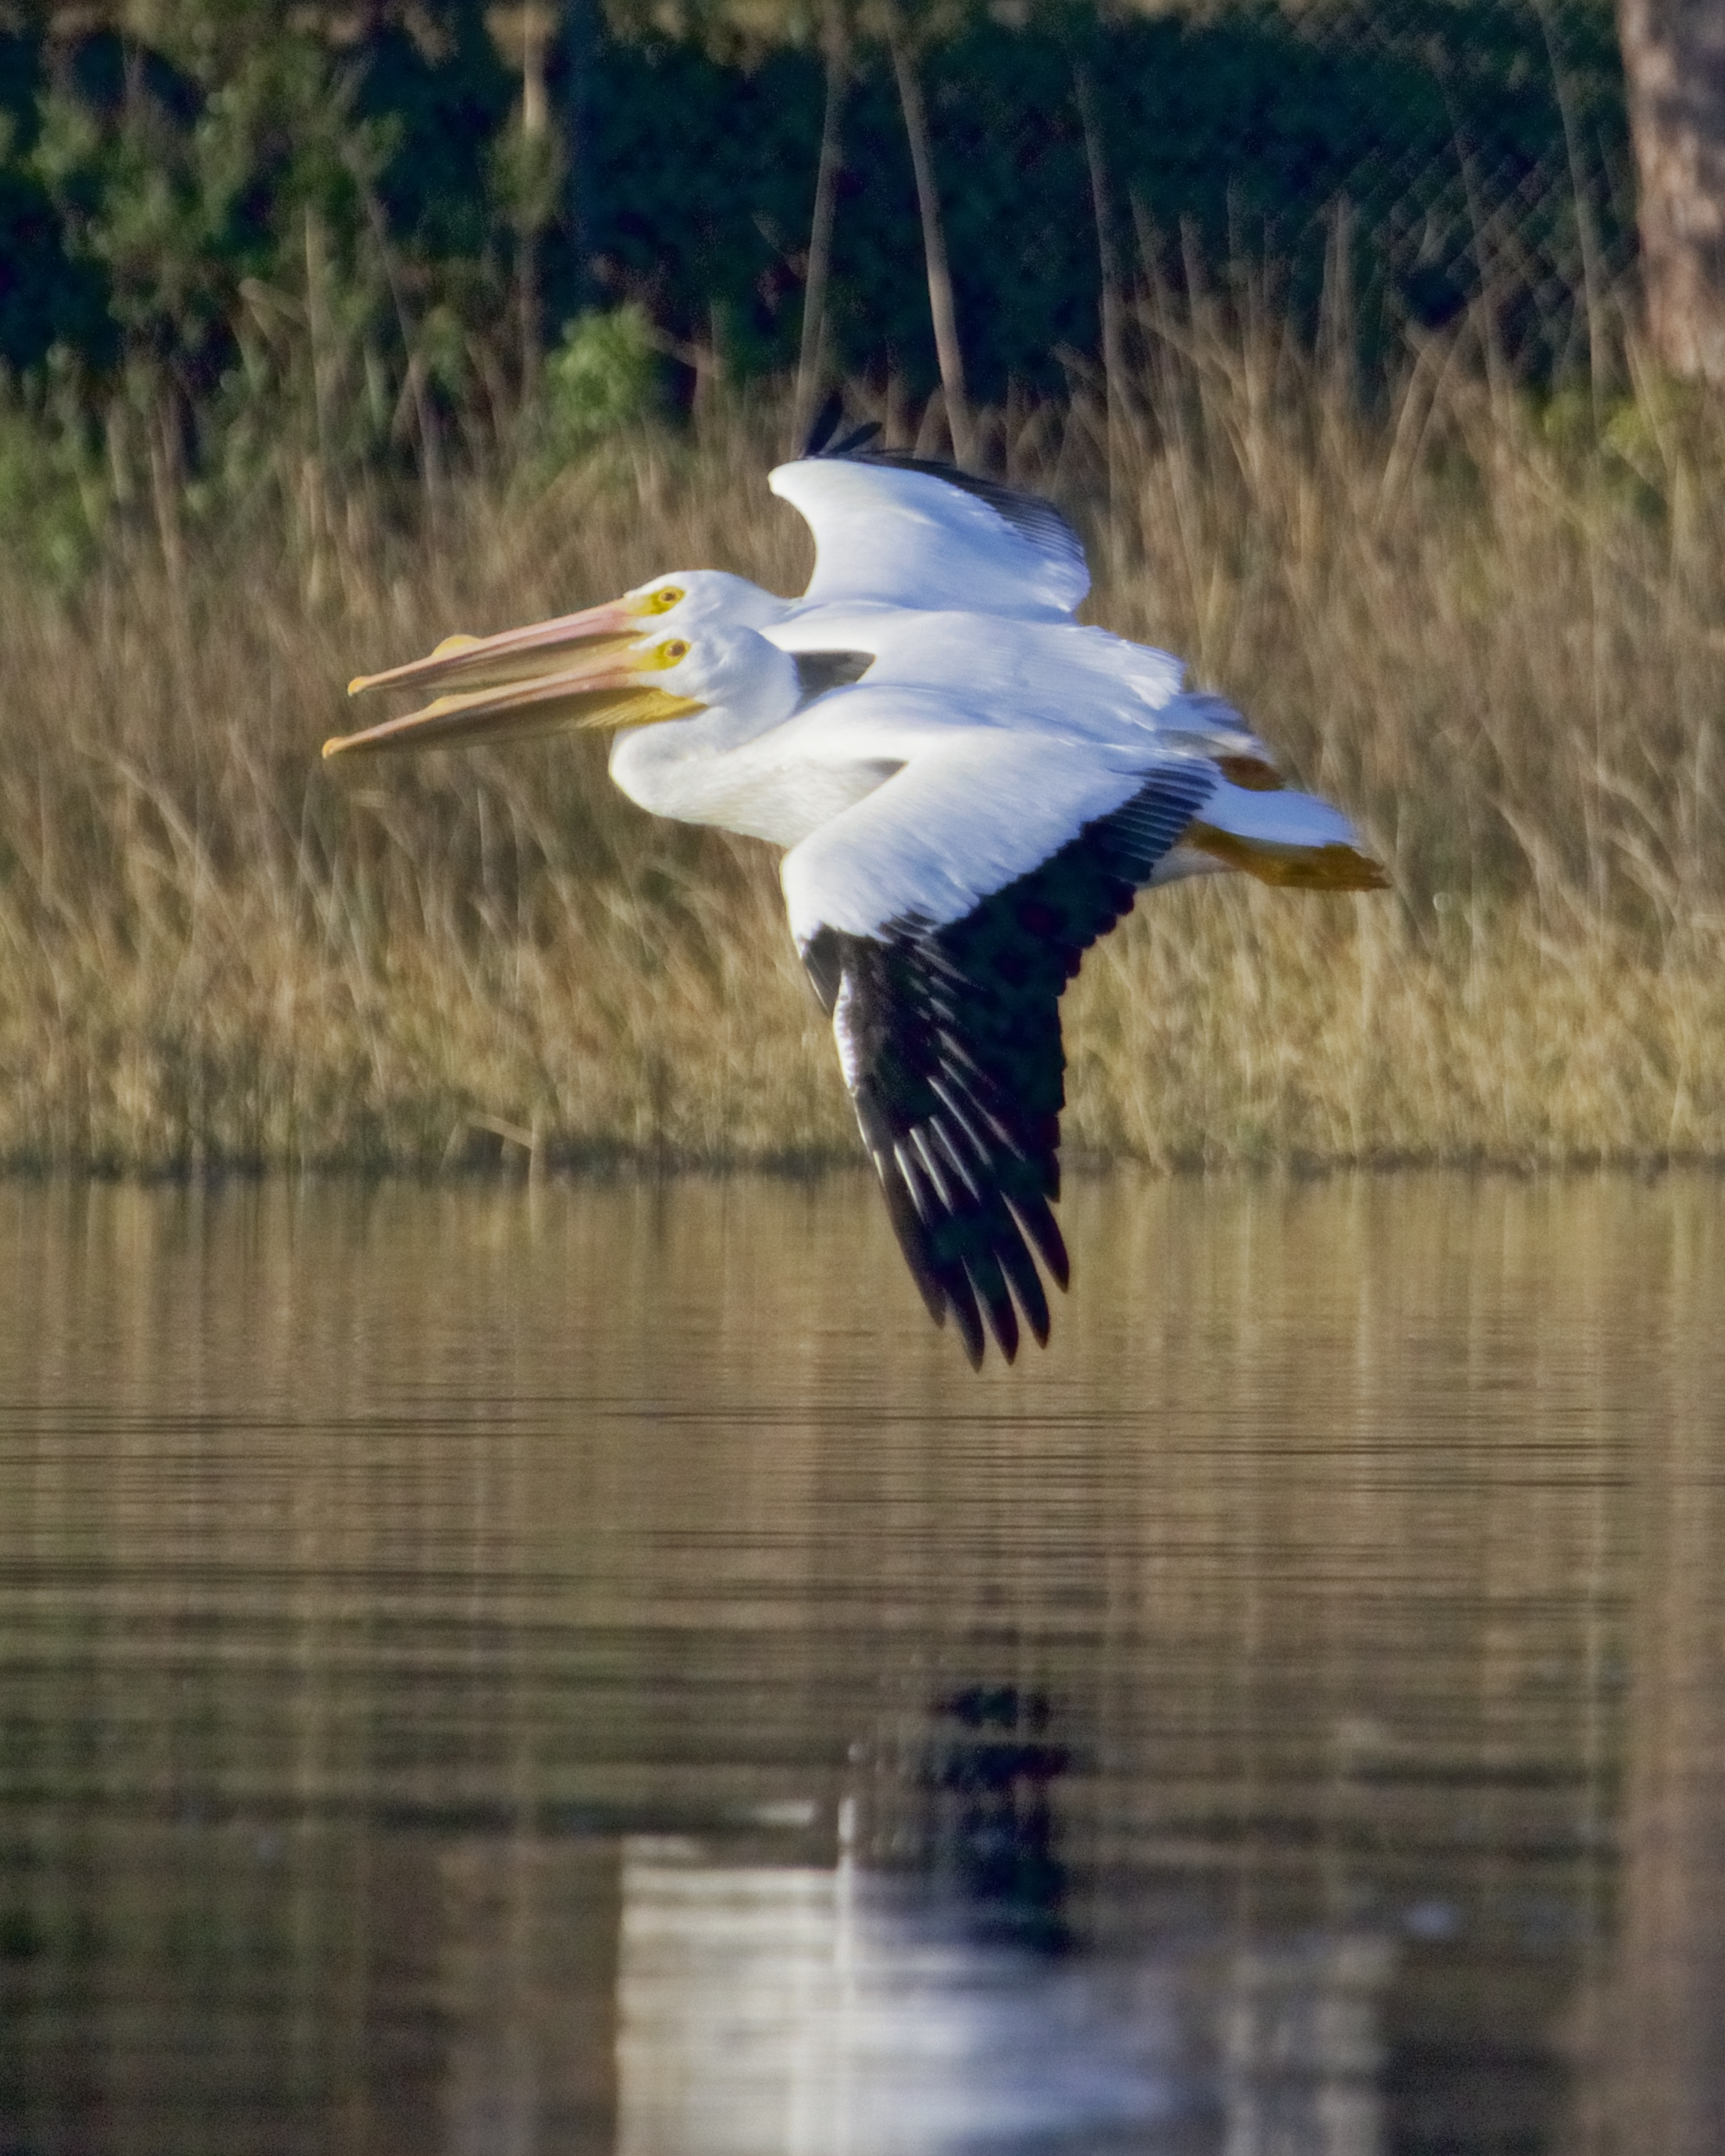 Tandom Flight..Breeding sails are showing on the beaks of this pair of male White Pelicans